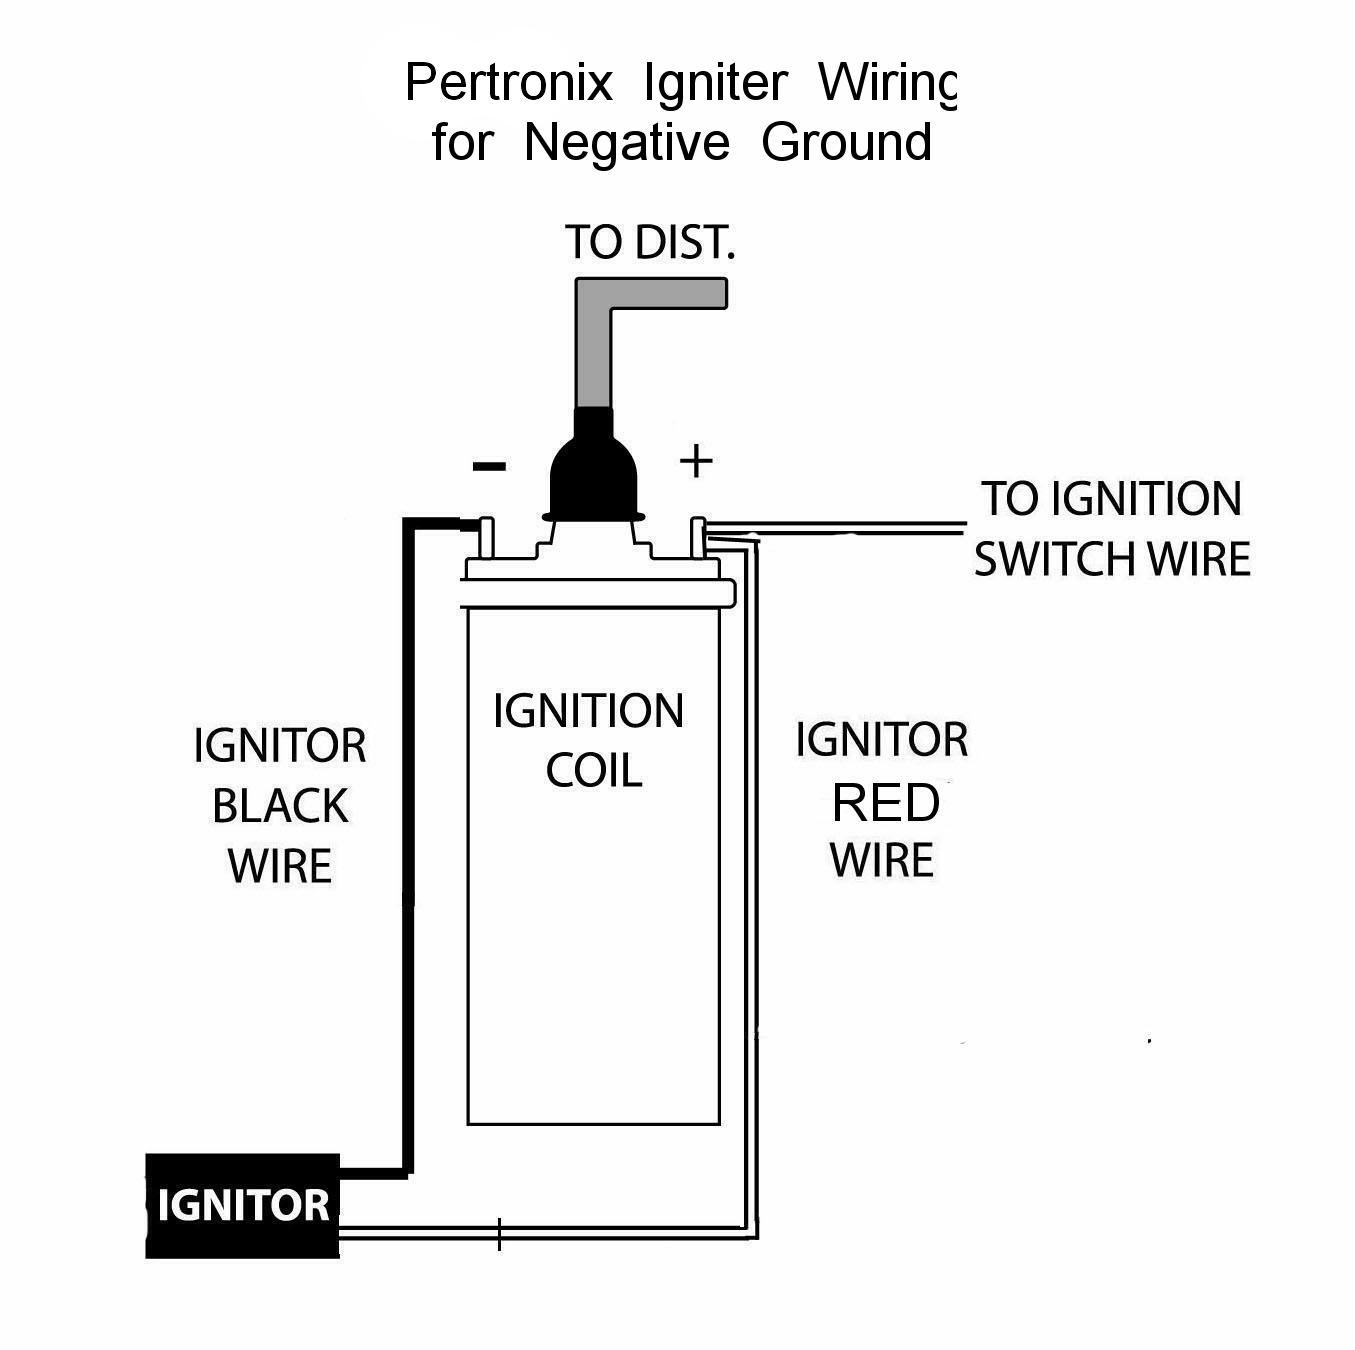 mallory/pertronix wiring - electrical - ratsun forums ground 12 diagram wiring volt negative wiring diagram 12 lead 460 volt motor